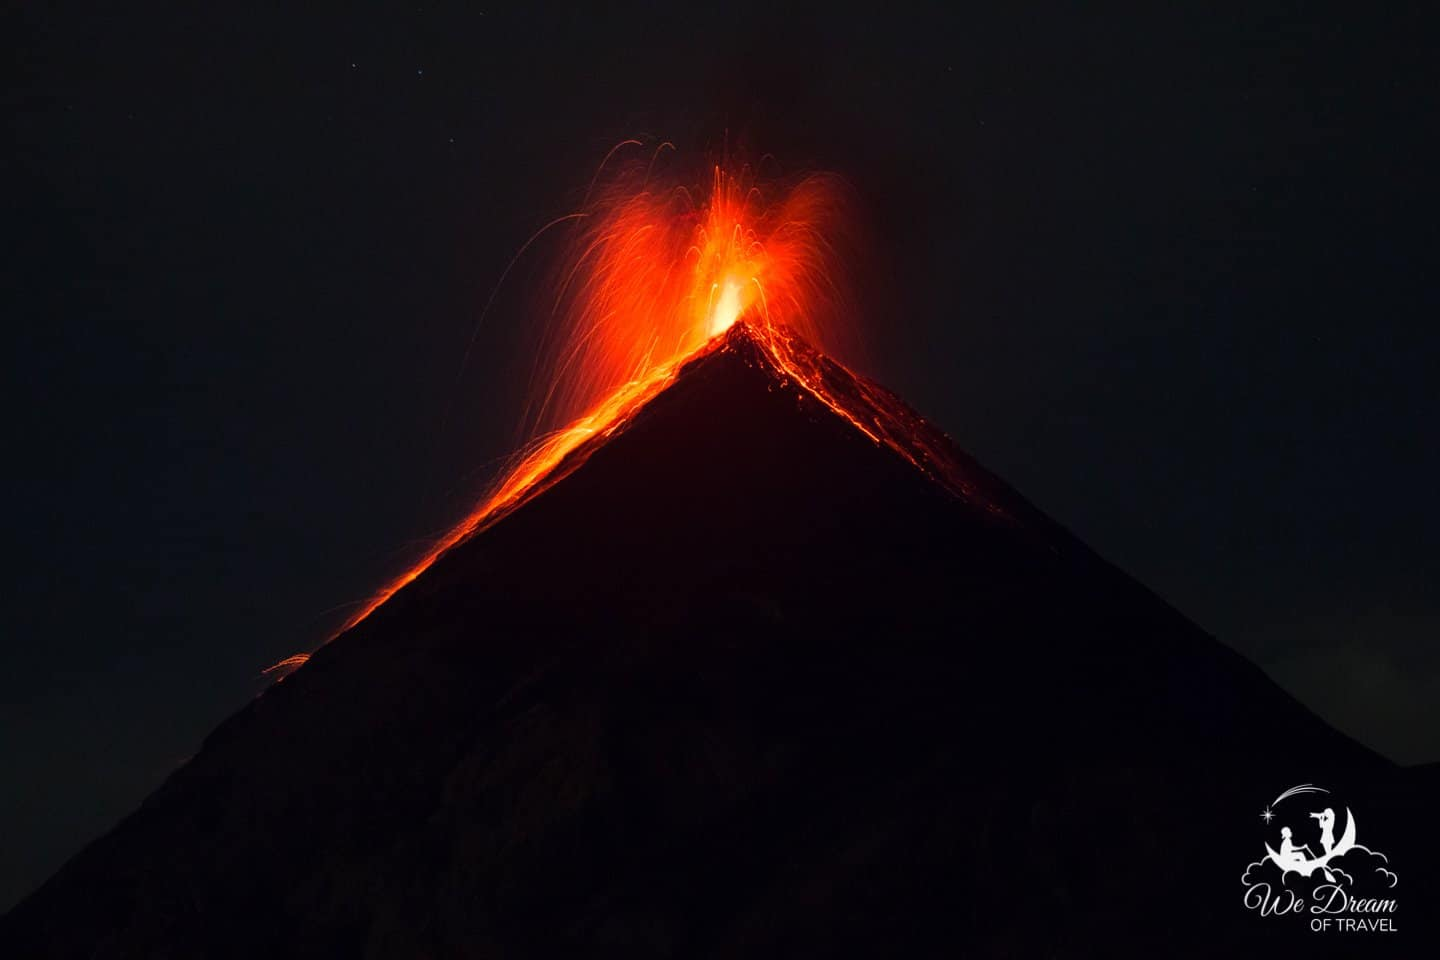 Watching a volcano erupt should be at the top of every bucket list!